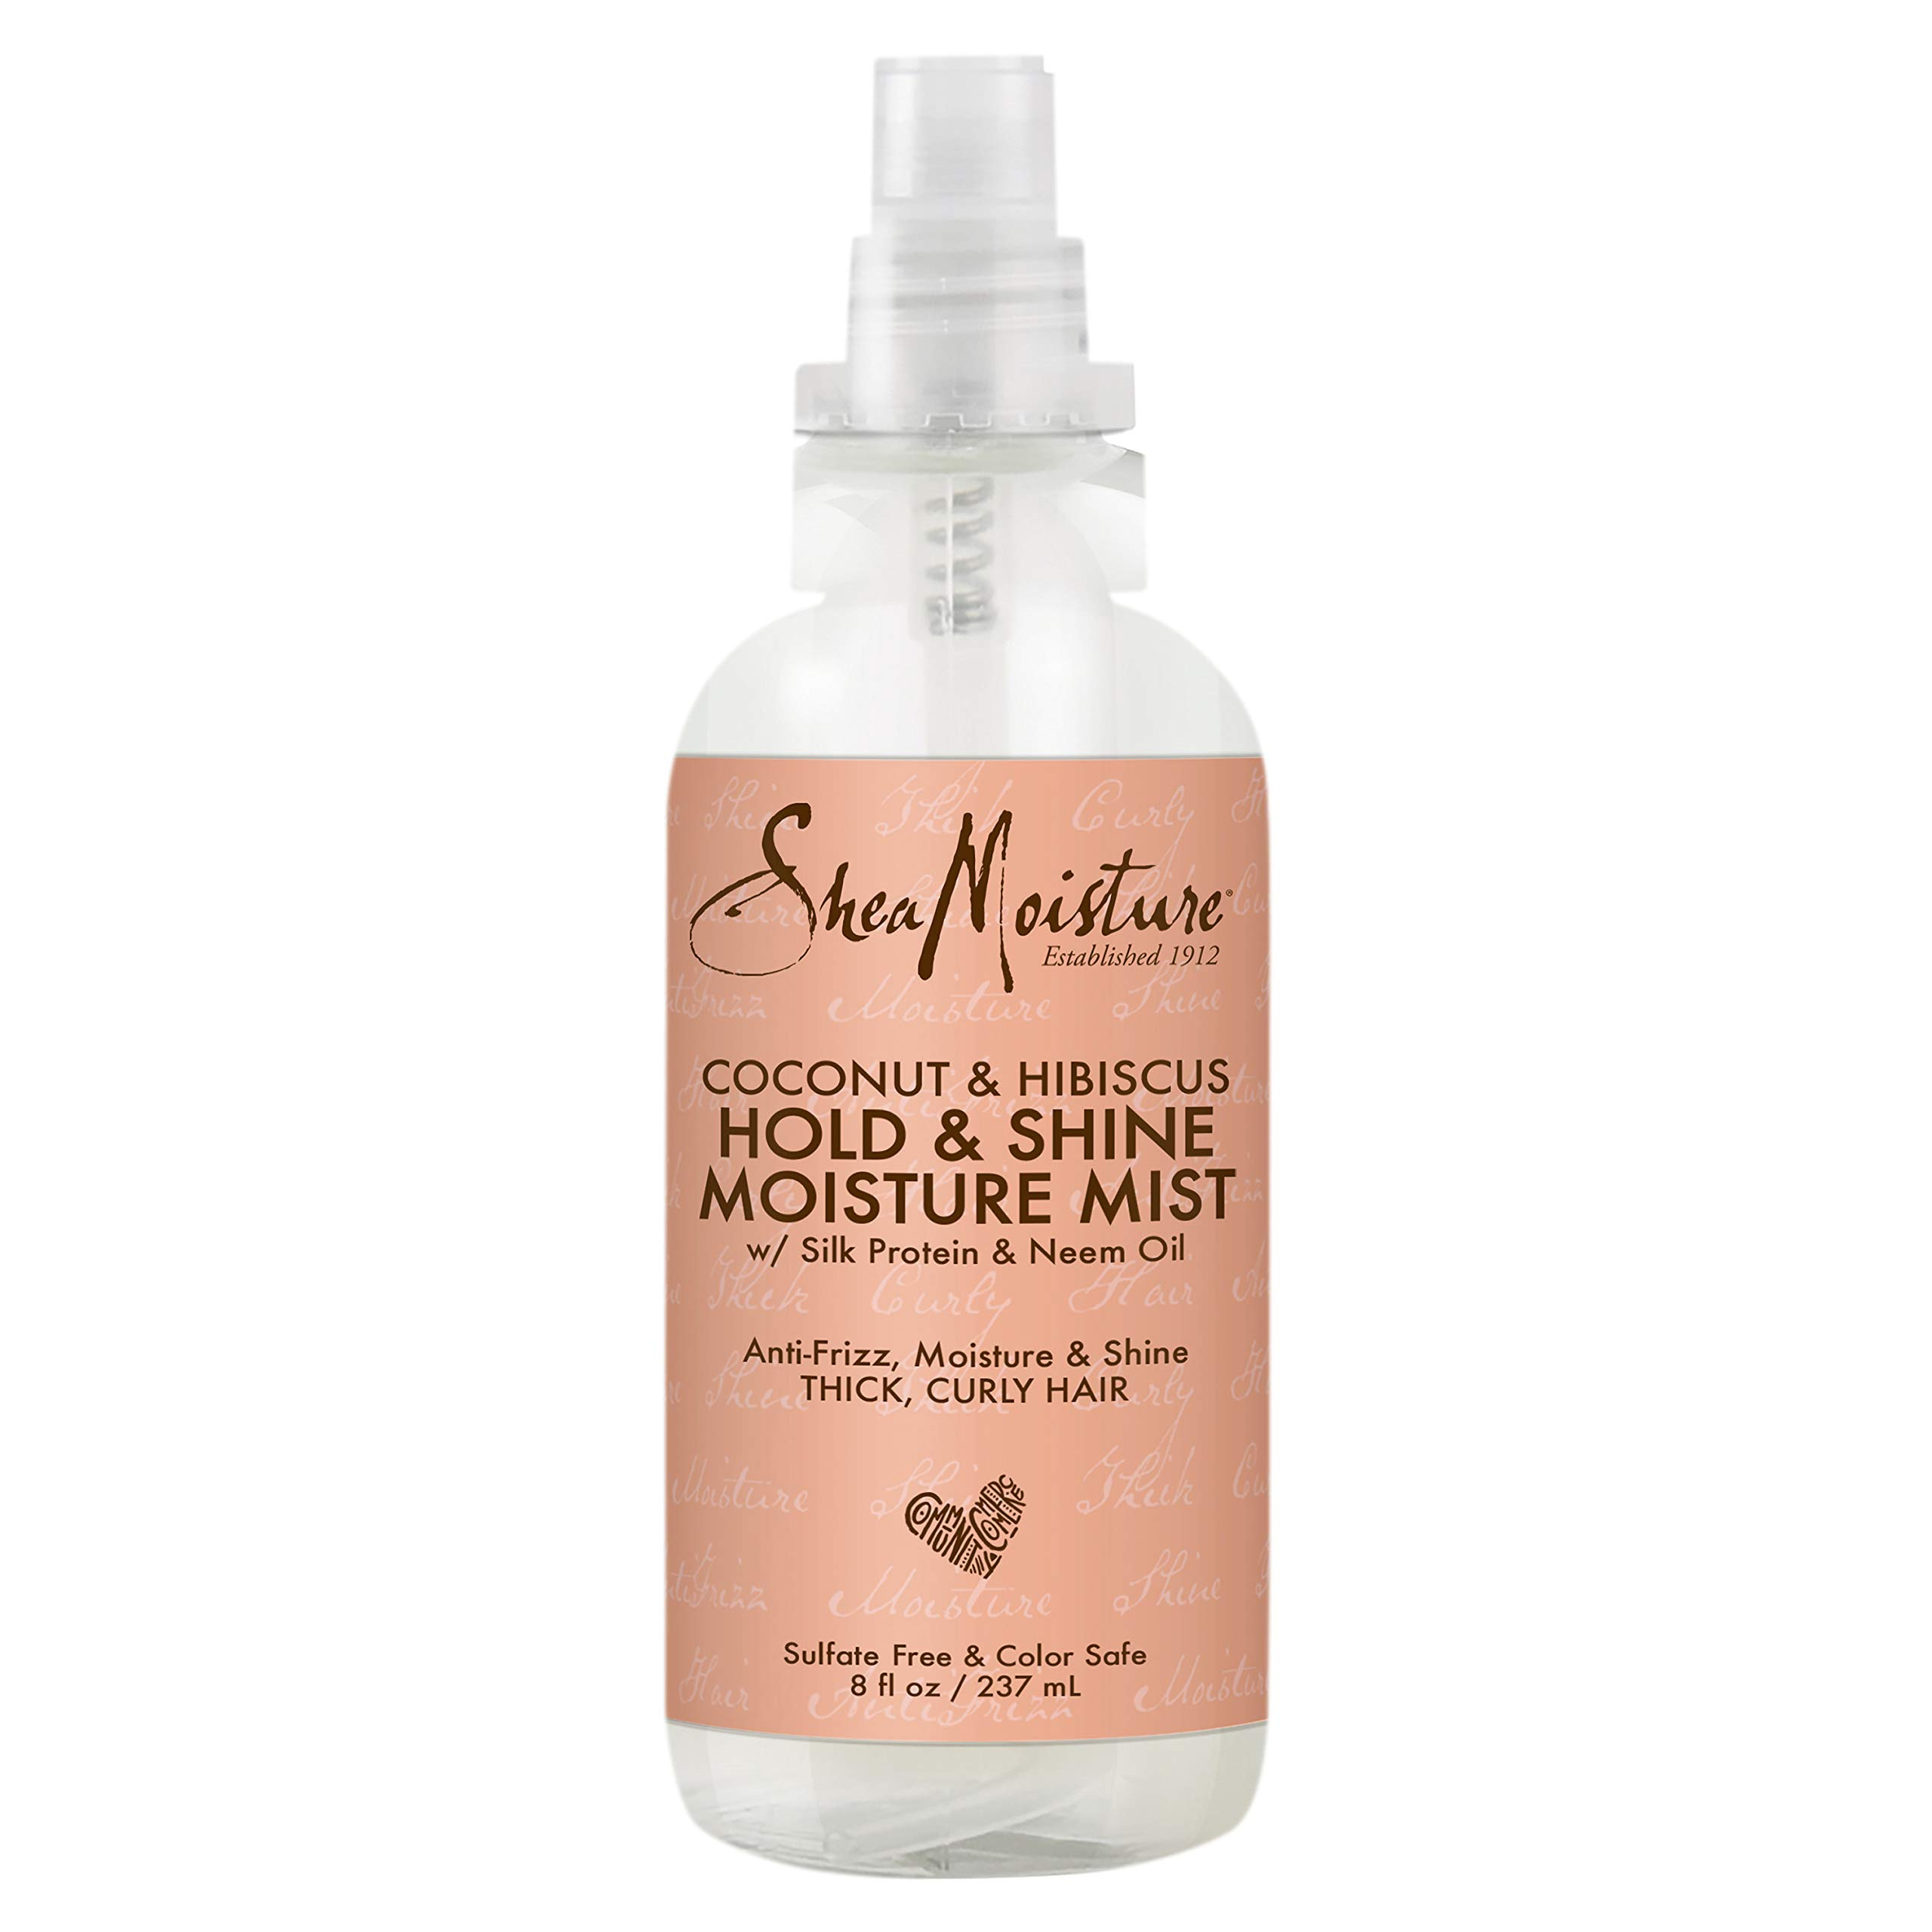 SheaMoisture Hold & Shine Moisture Mist for Thick, Curly Hair Coconut & Hibiscus for Frizz Control 8 oz